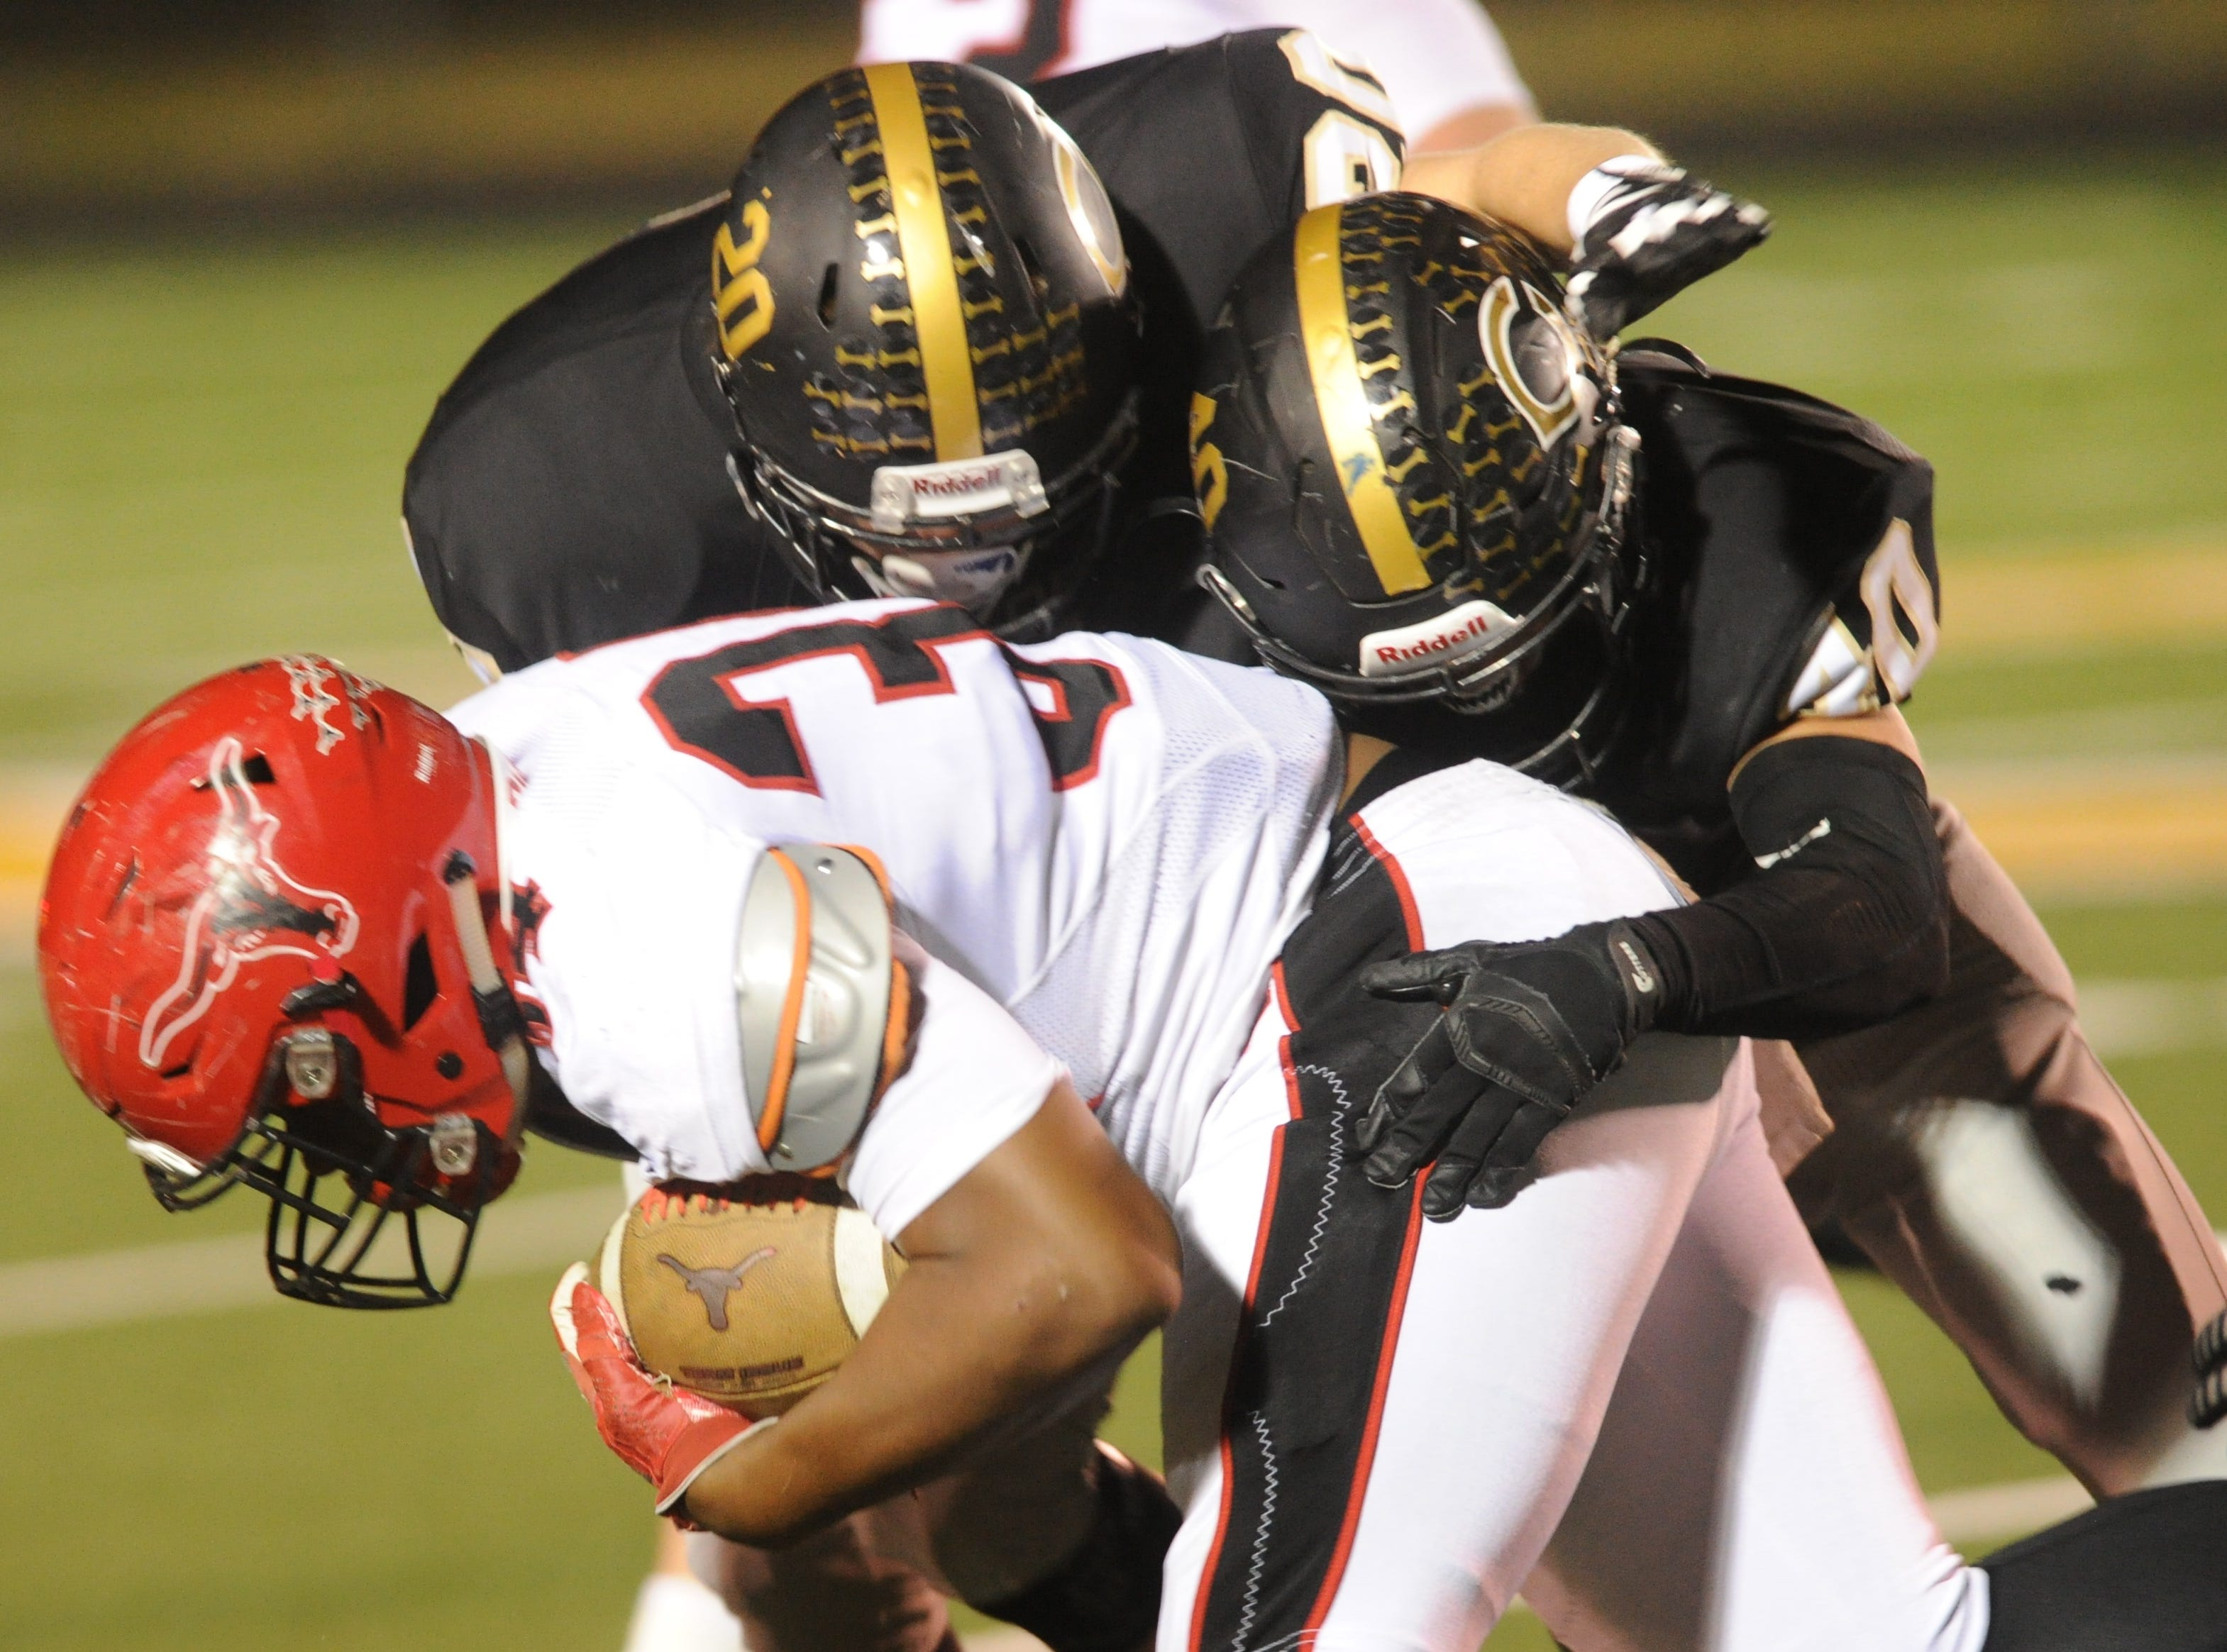 Clyde's Britten Brashear (20) and Bo Baker tackle Eastland running back Brandon Fielding during the first half of their District 3-3A Division I game Friday, Nov. 2, 2018, at Clyde. Eastland rallied from a 14-7 halftime deficit to beat the Bulldogs 28-14.